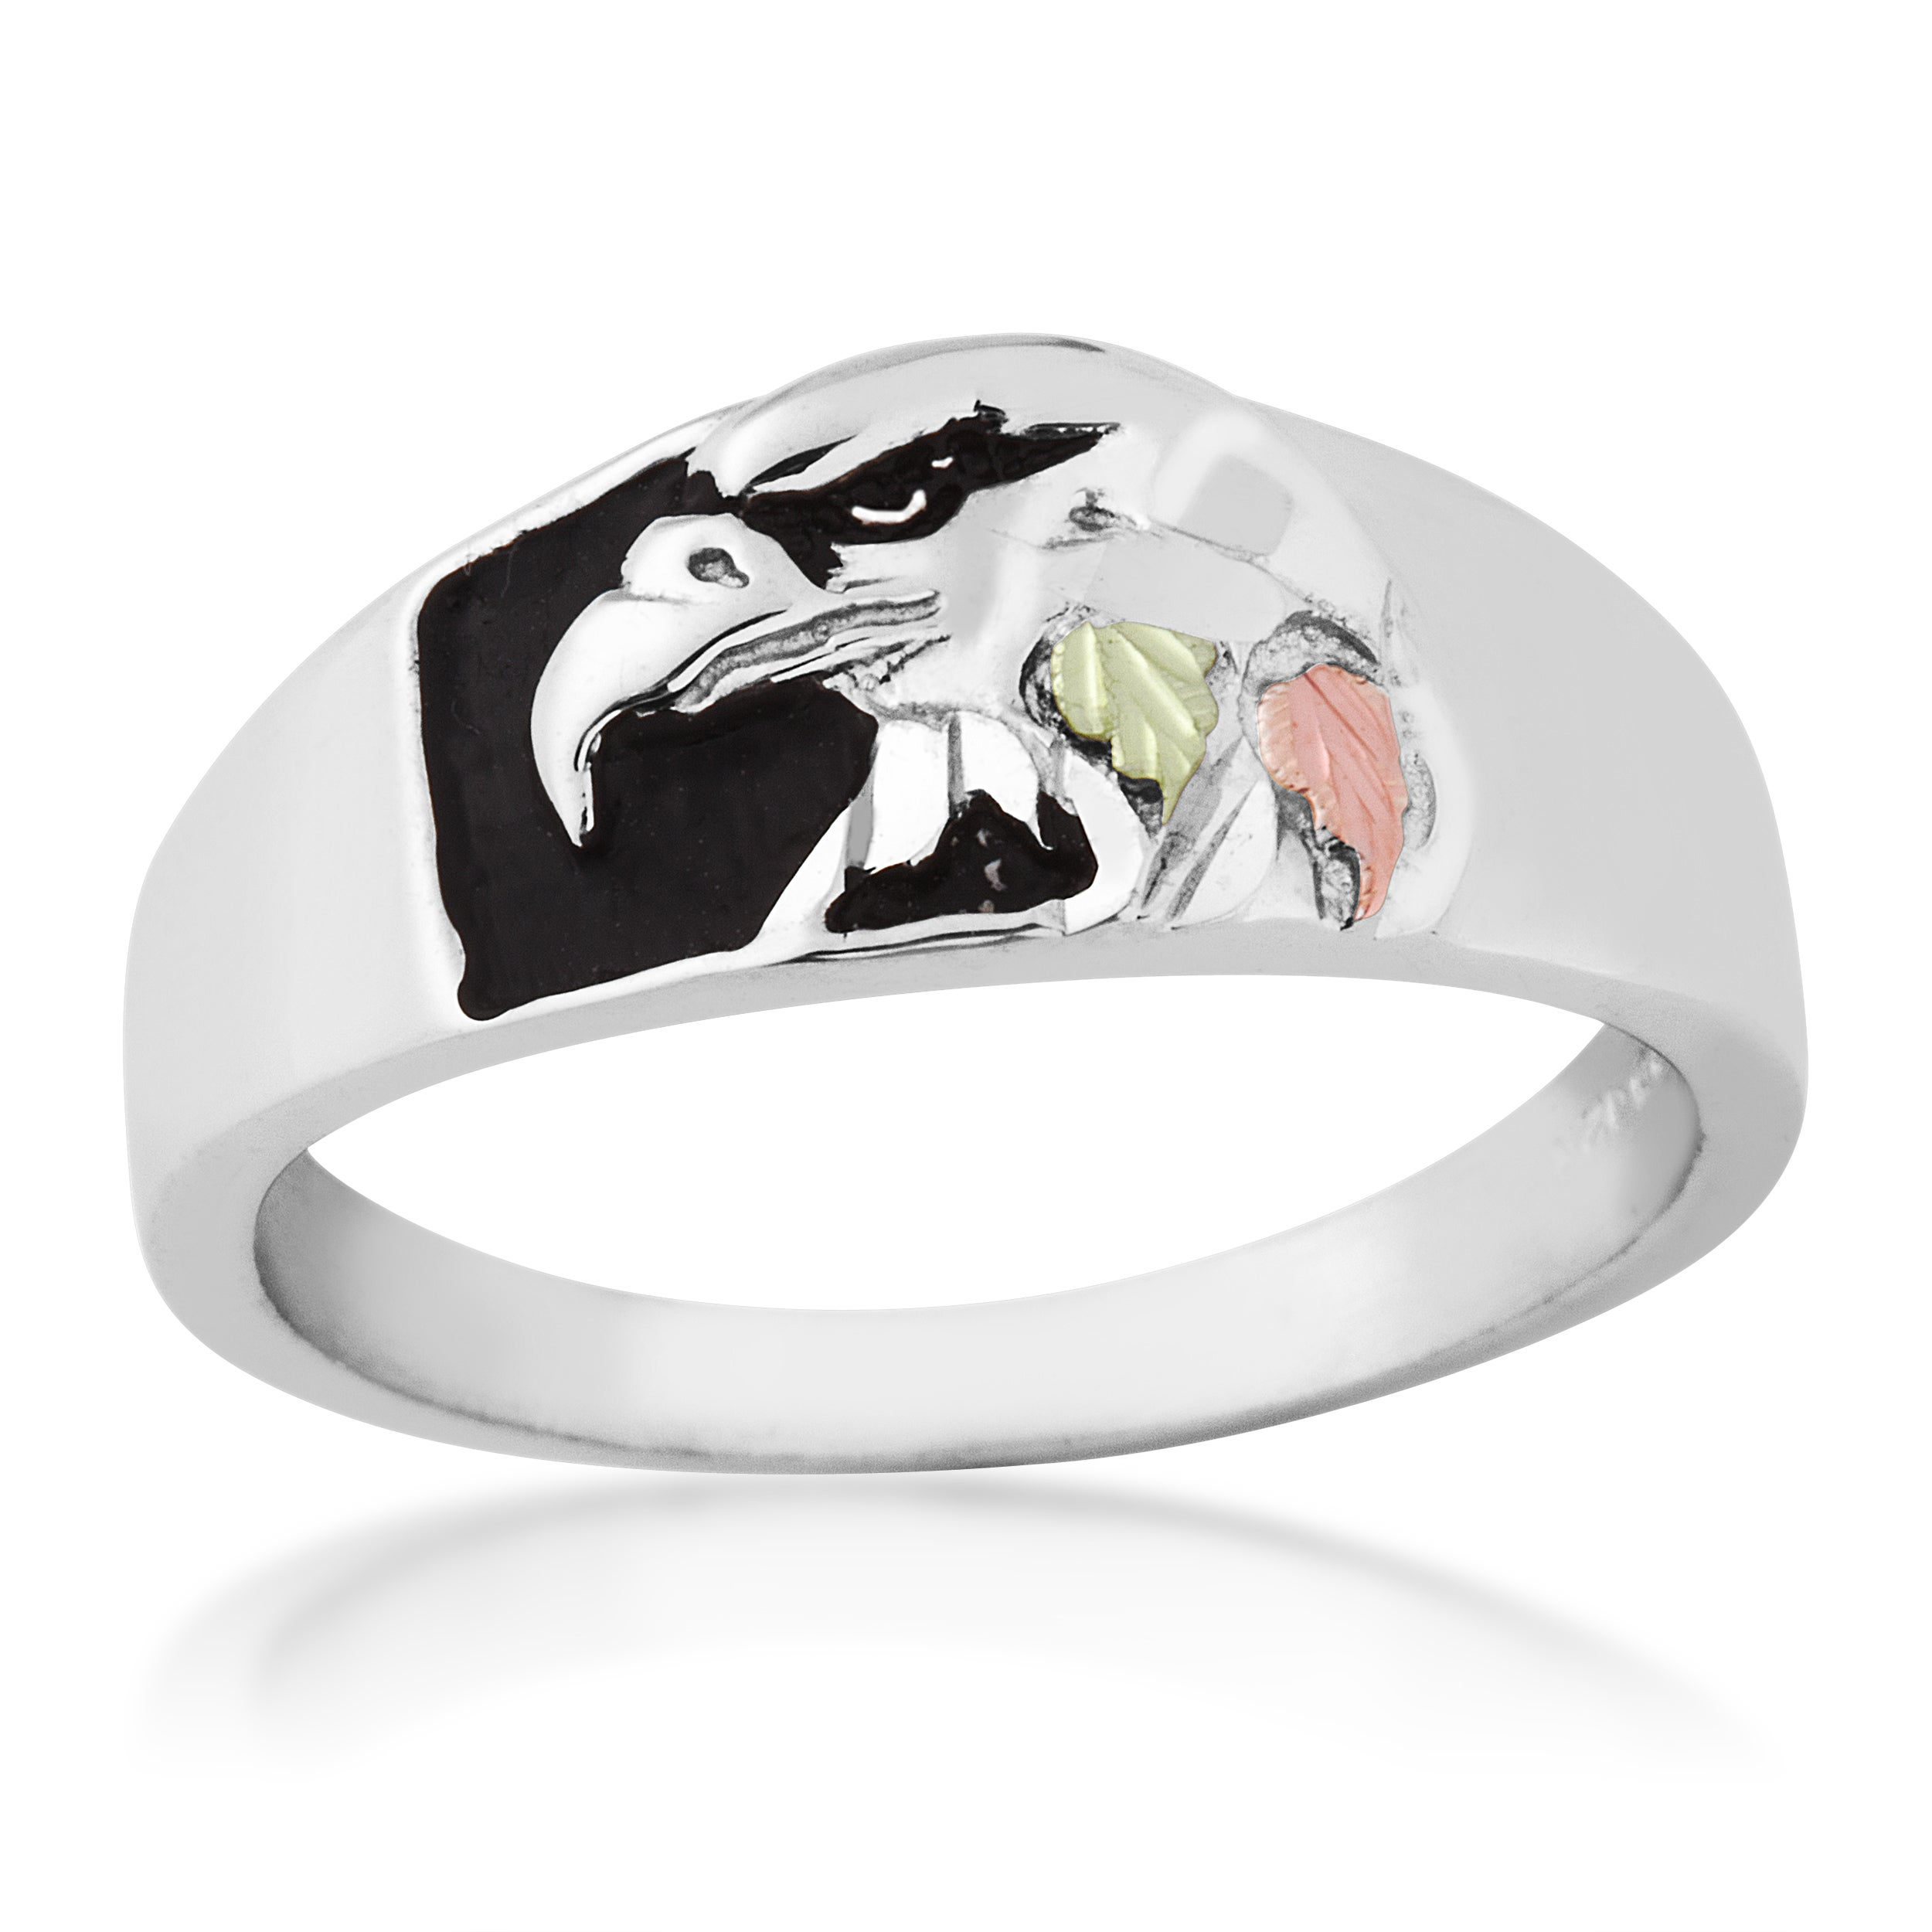 hills ring bust roger black silver gold custom rings made hand on rogerwagonerdesignscom eagle by